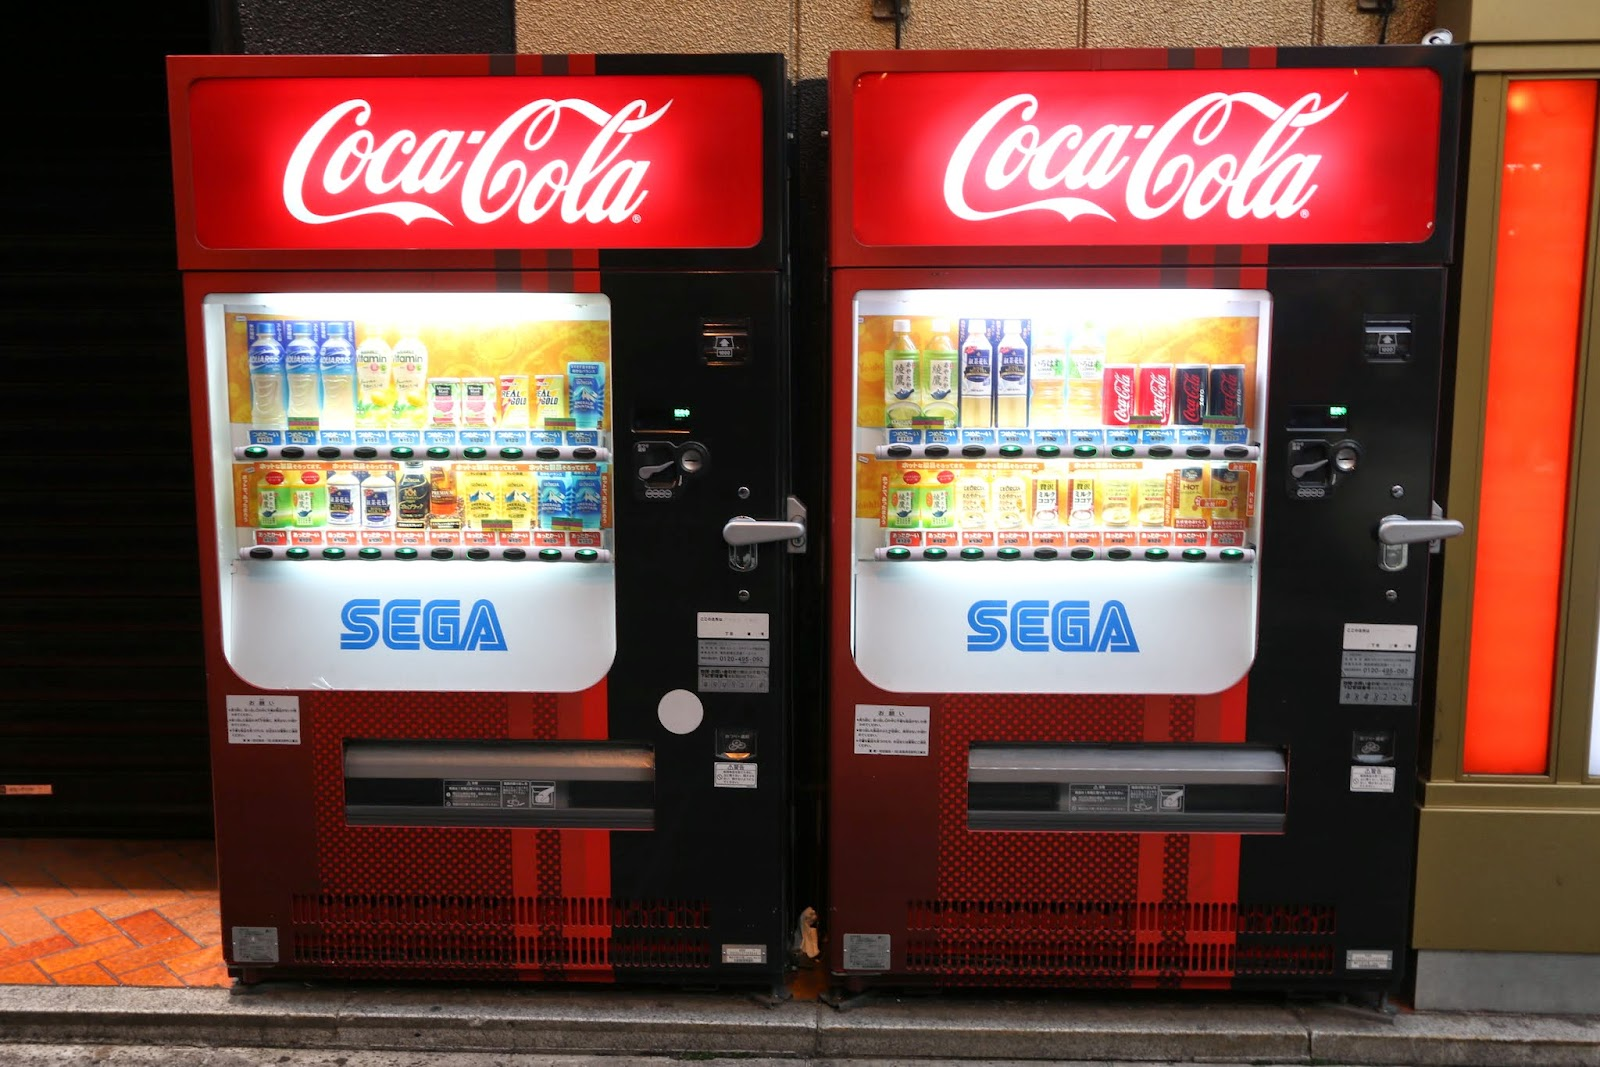 An interesting softdrink dispenser machine with co-sponsor by Sega at Akihabara in Tokyo, Japan